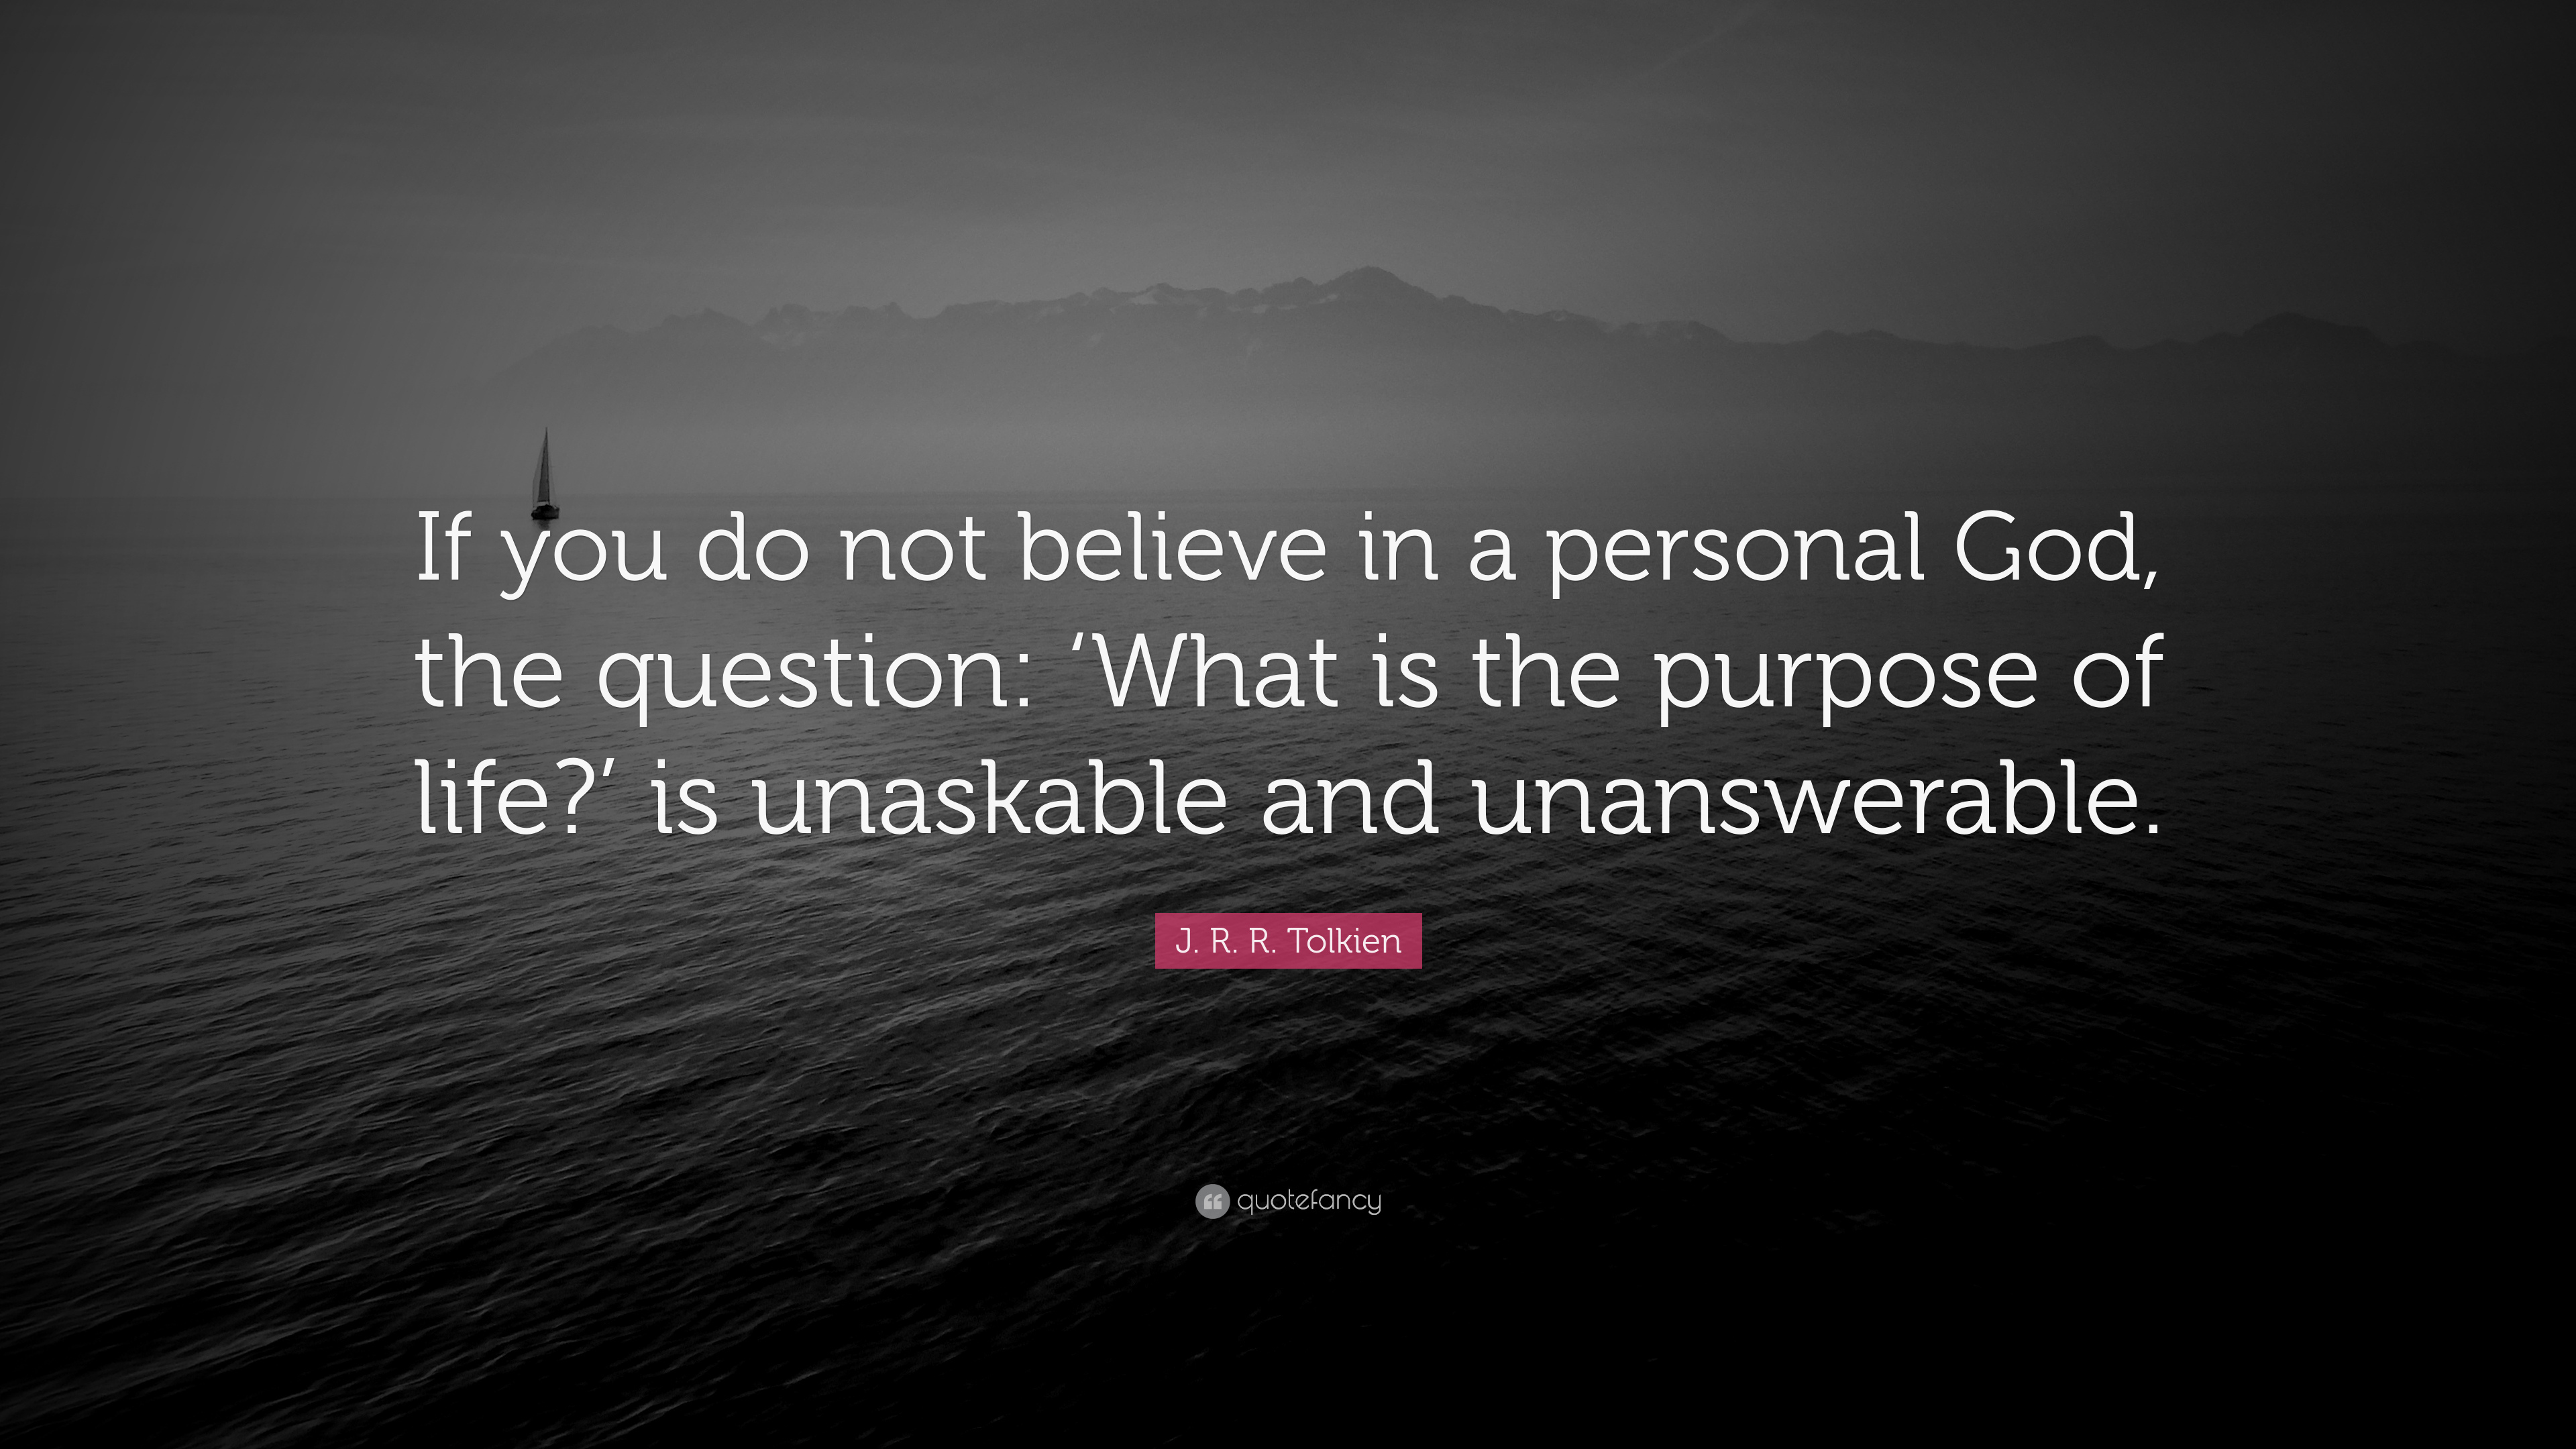 J R R Tolkien Quote If You Do Not Believe In A Personal God